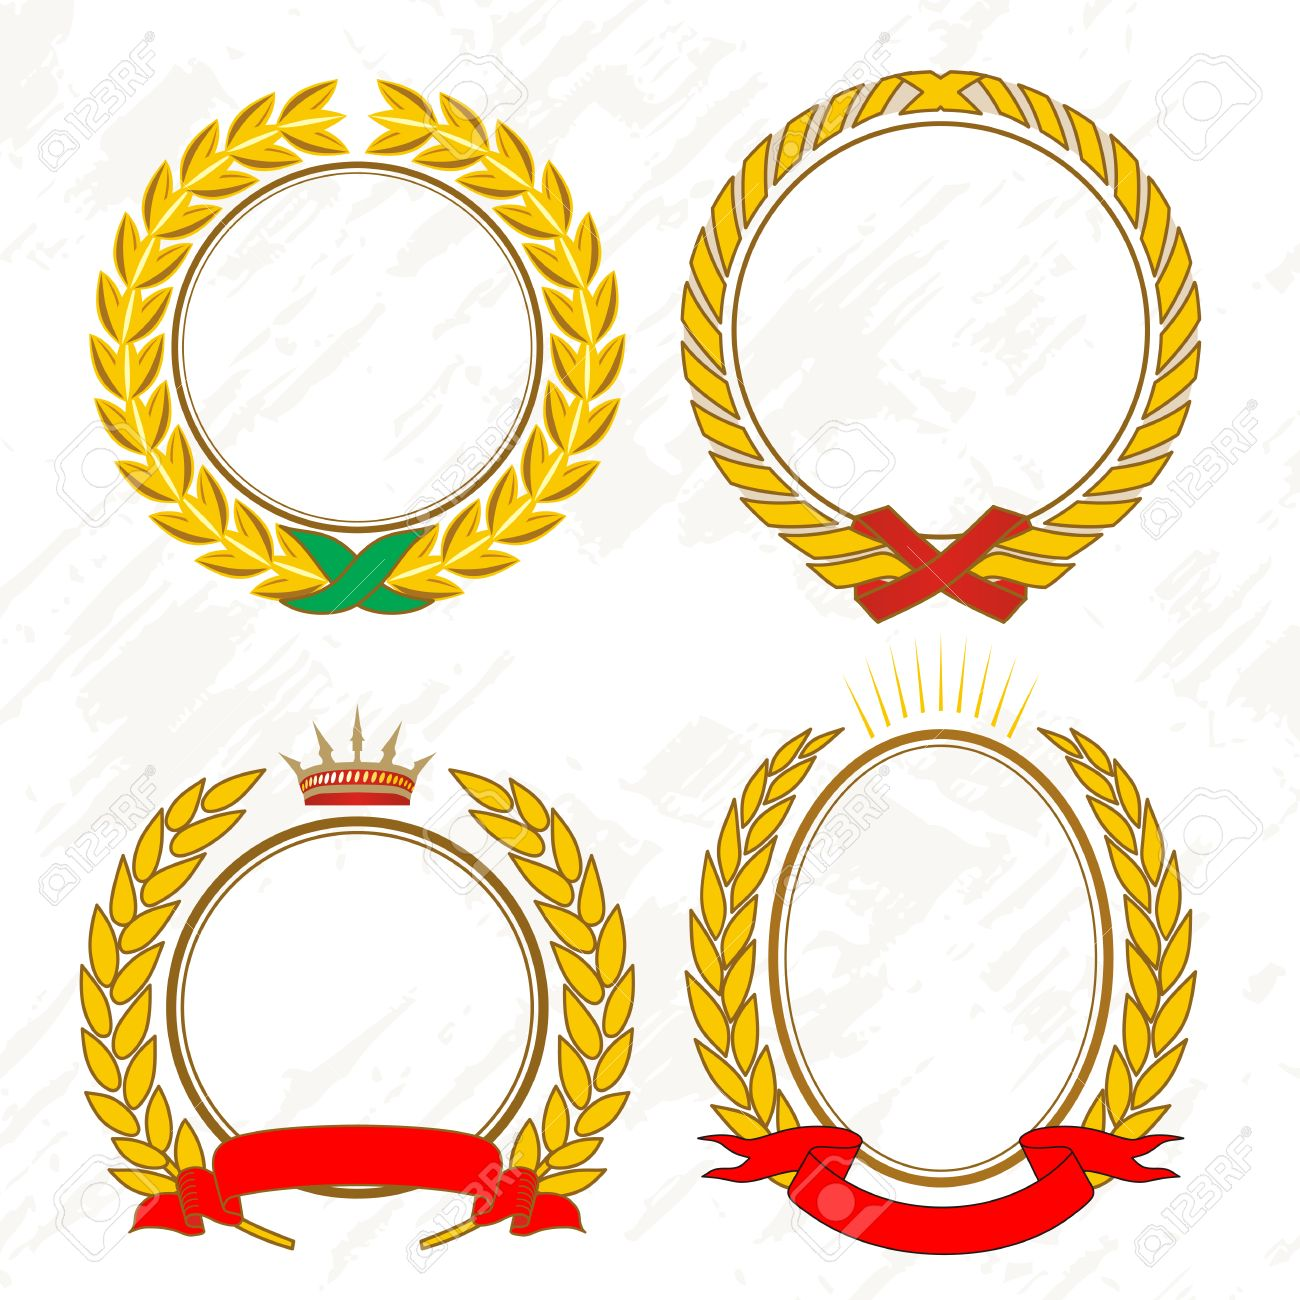 Gold Laurel Wreath Royalty Free Cliparts, Vectors, And Stock ...